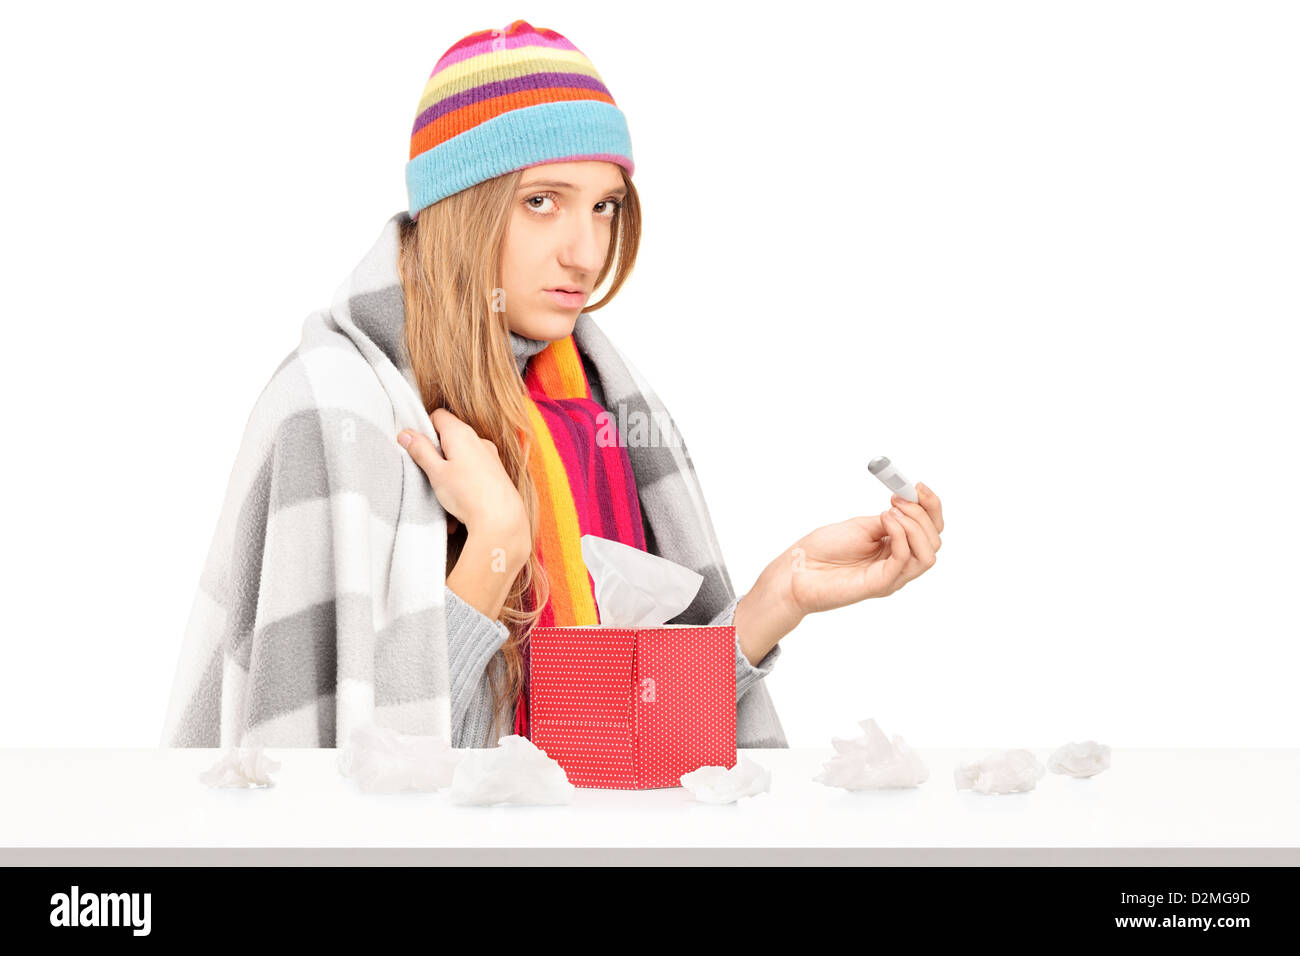 Young woman with flu holding a thermometer, box with paper tissues on a table isolated on white background - Stock Image